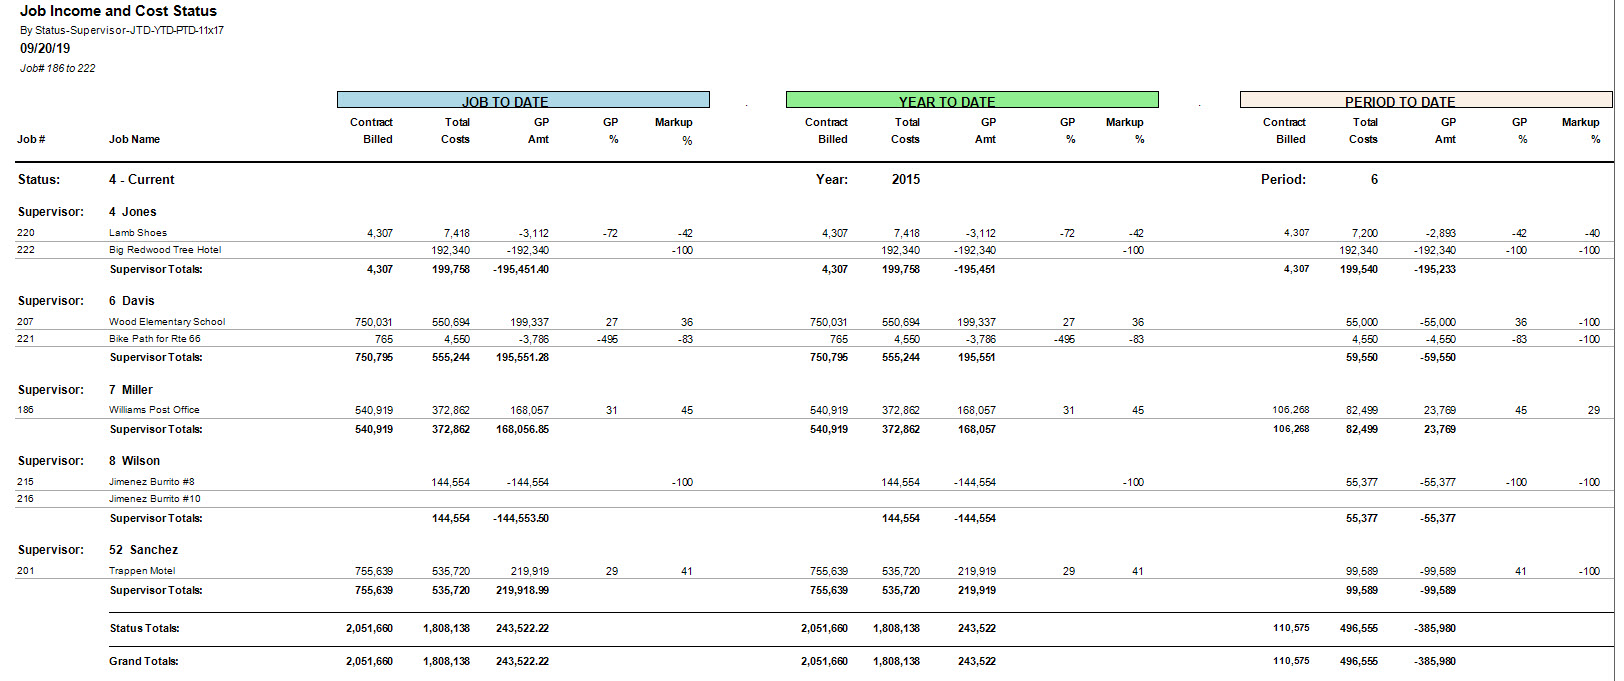 03-01-01-0h Job Income and Cost Status by Supervisor